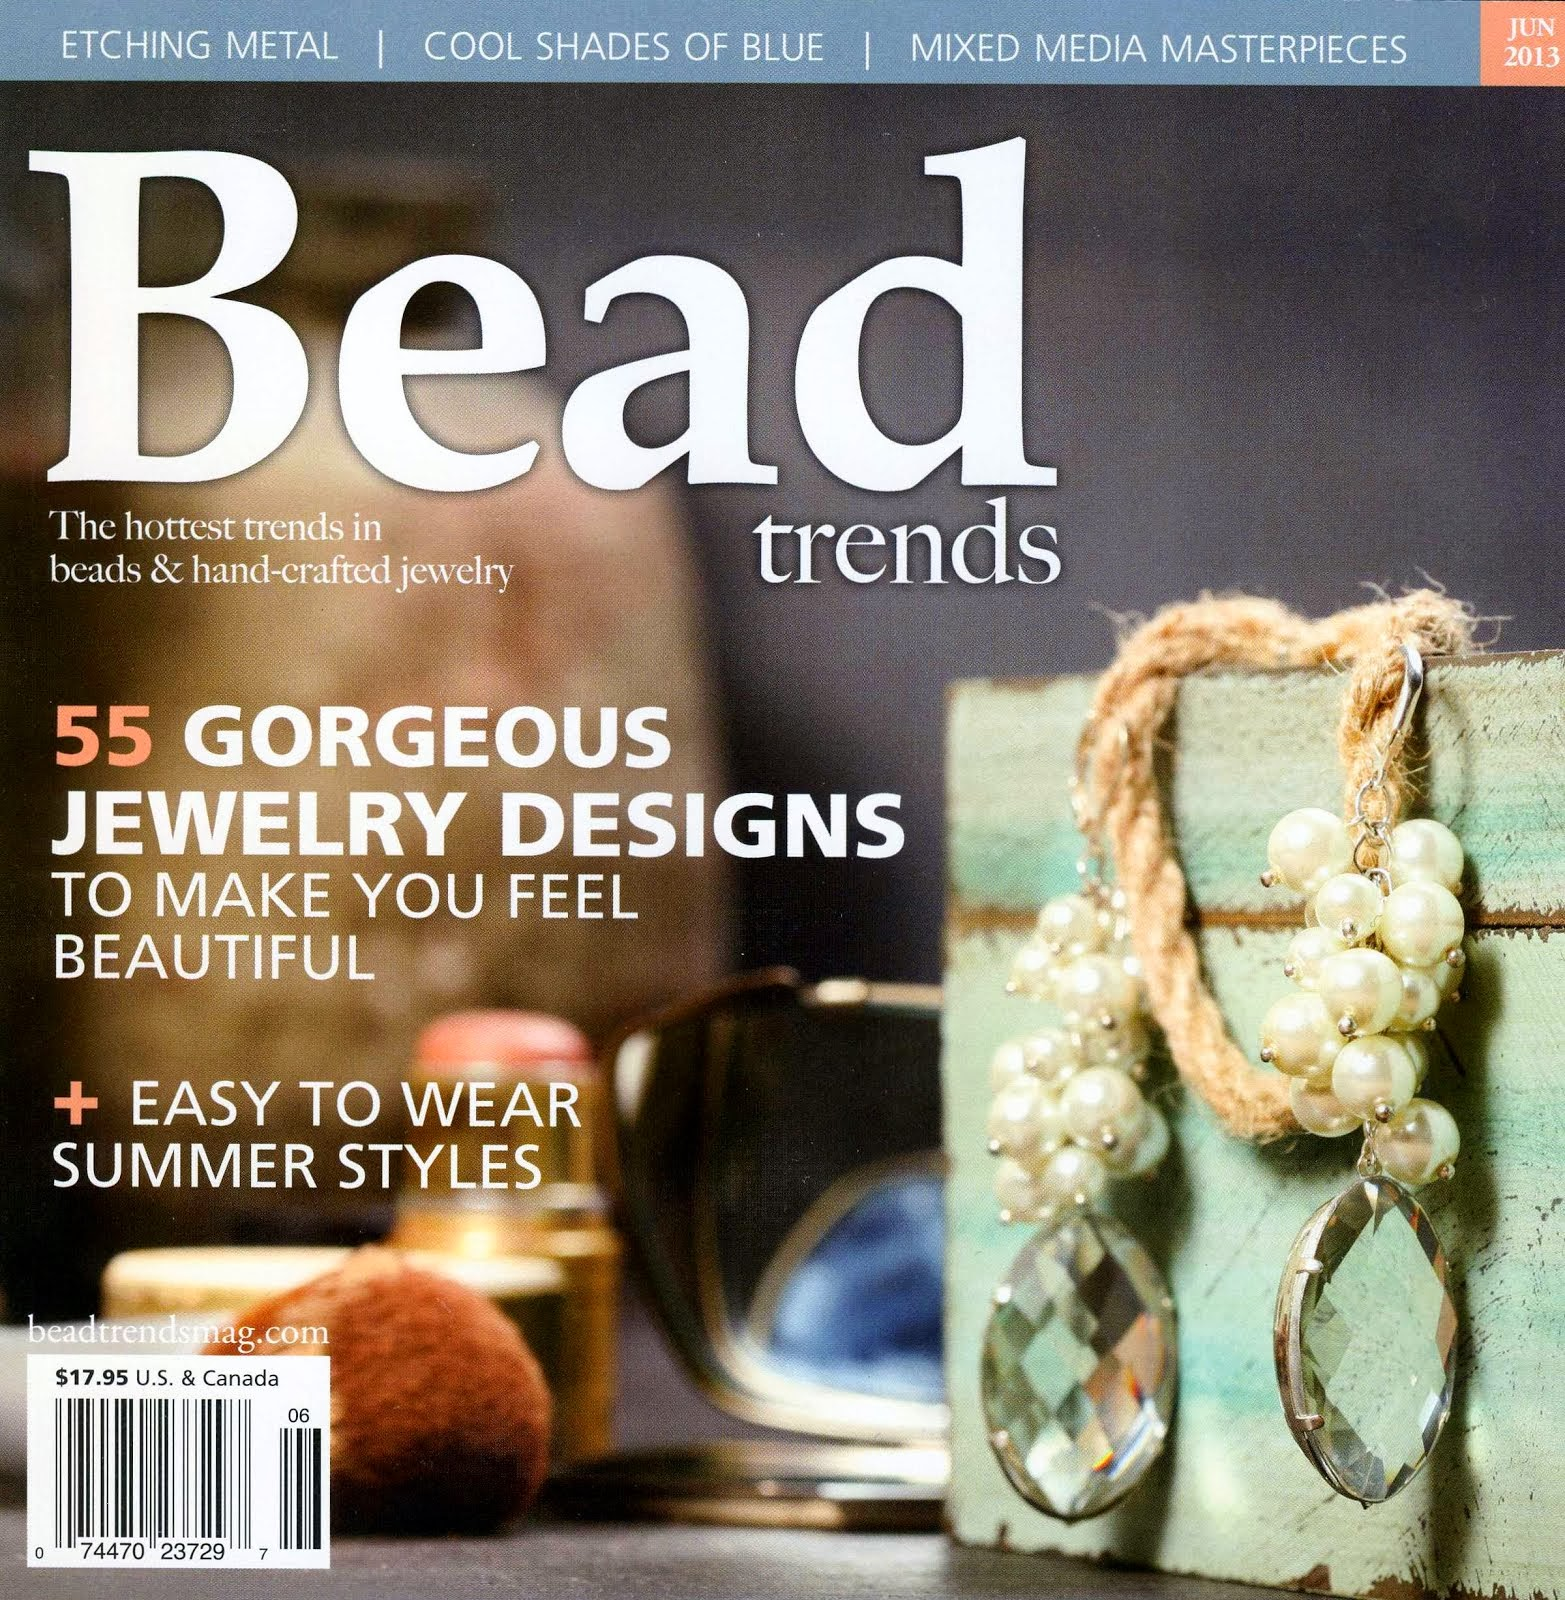 Bead Trends June 2013 Issue